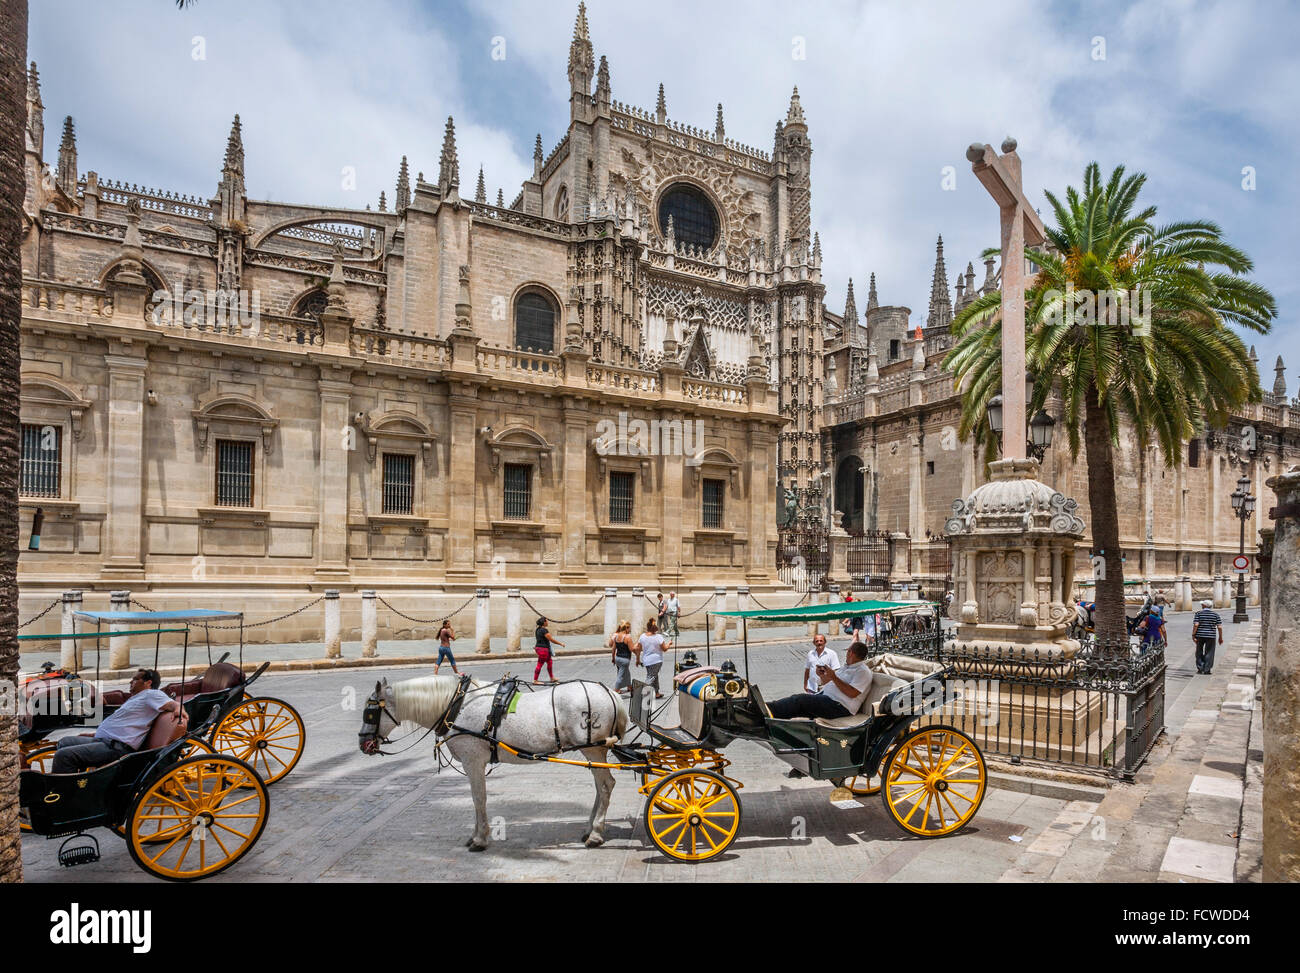 Spain, Andalusia, Province of Seville, Seville, carriages awaiting fares at Seville Cathedral - Stock Image